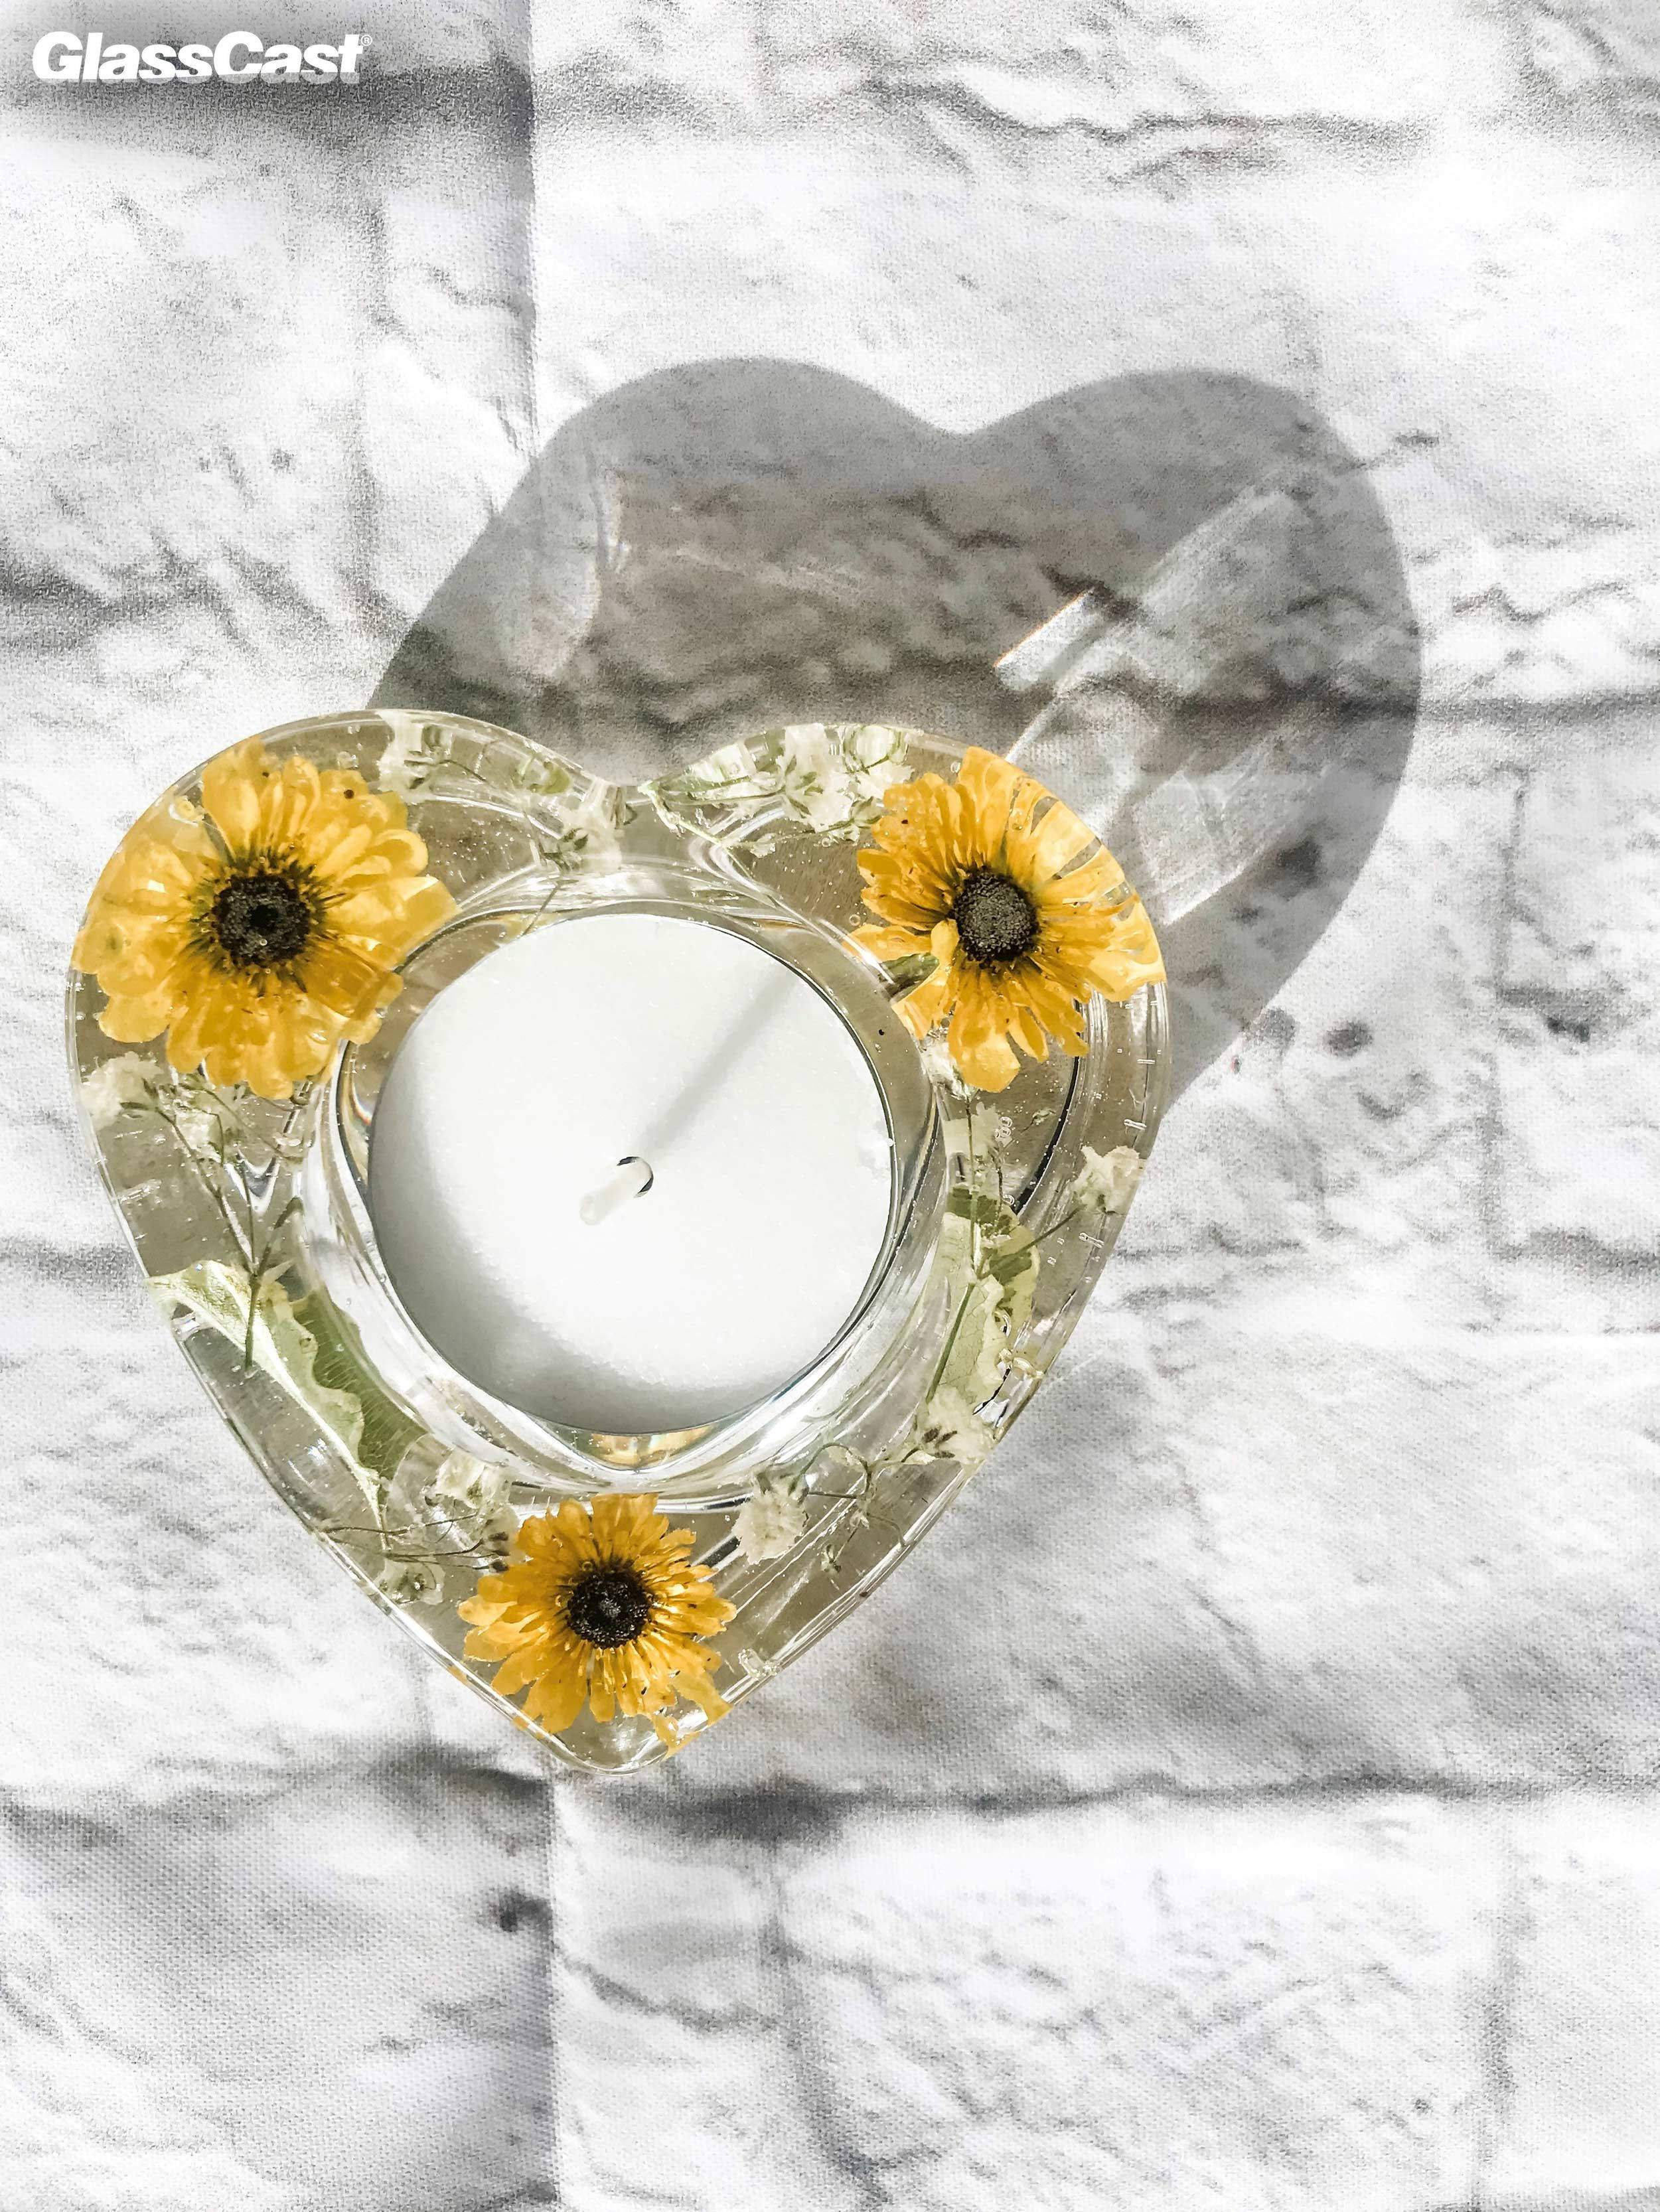 Floral Epoxy Resin Candle Holders Glasscast